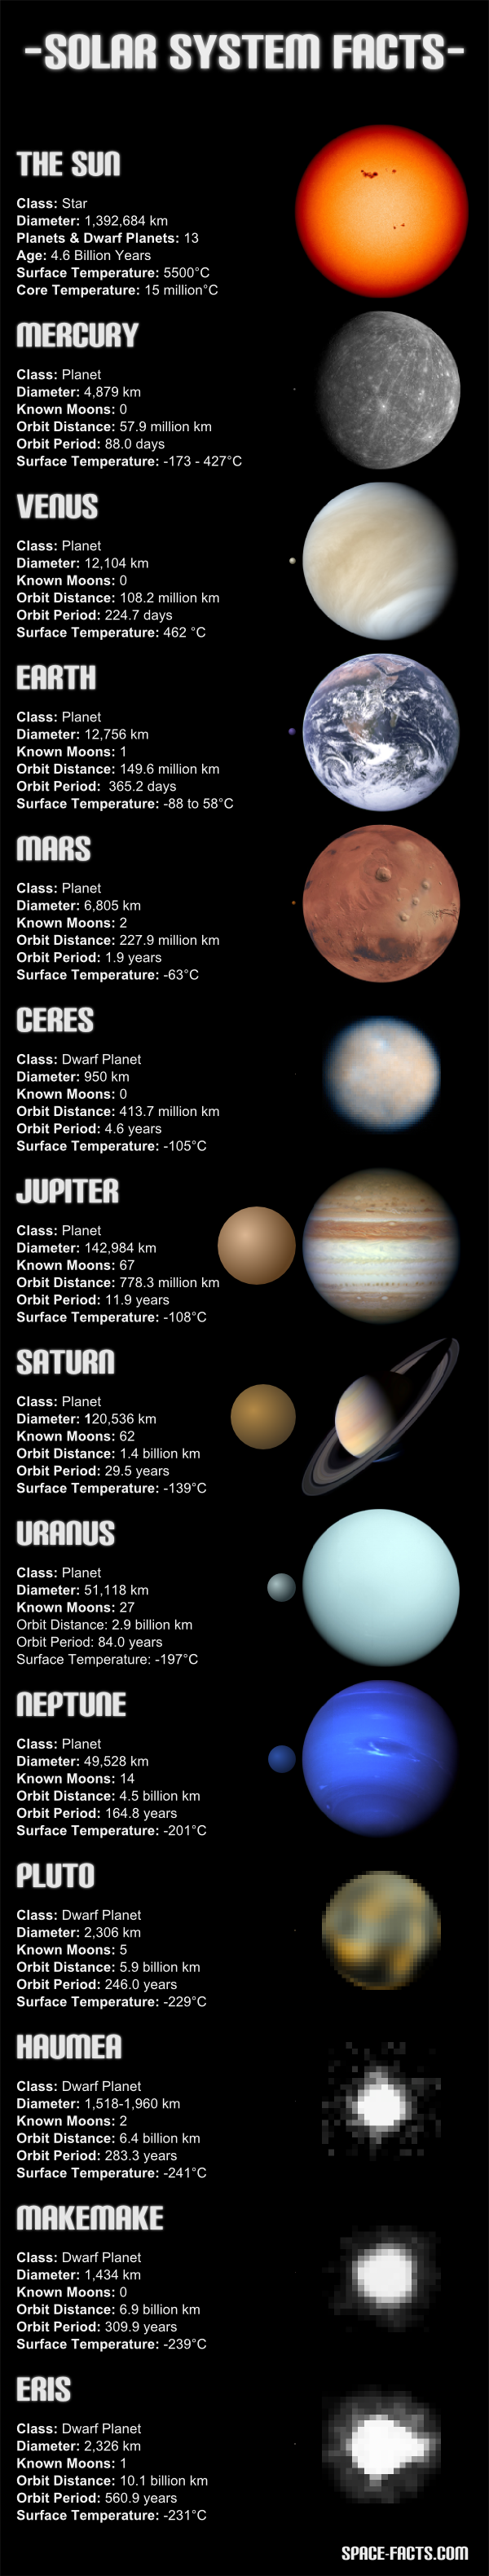 Solar System Facts (Planets & Dwarf Planets)